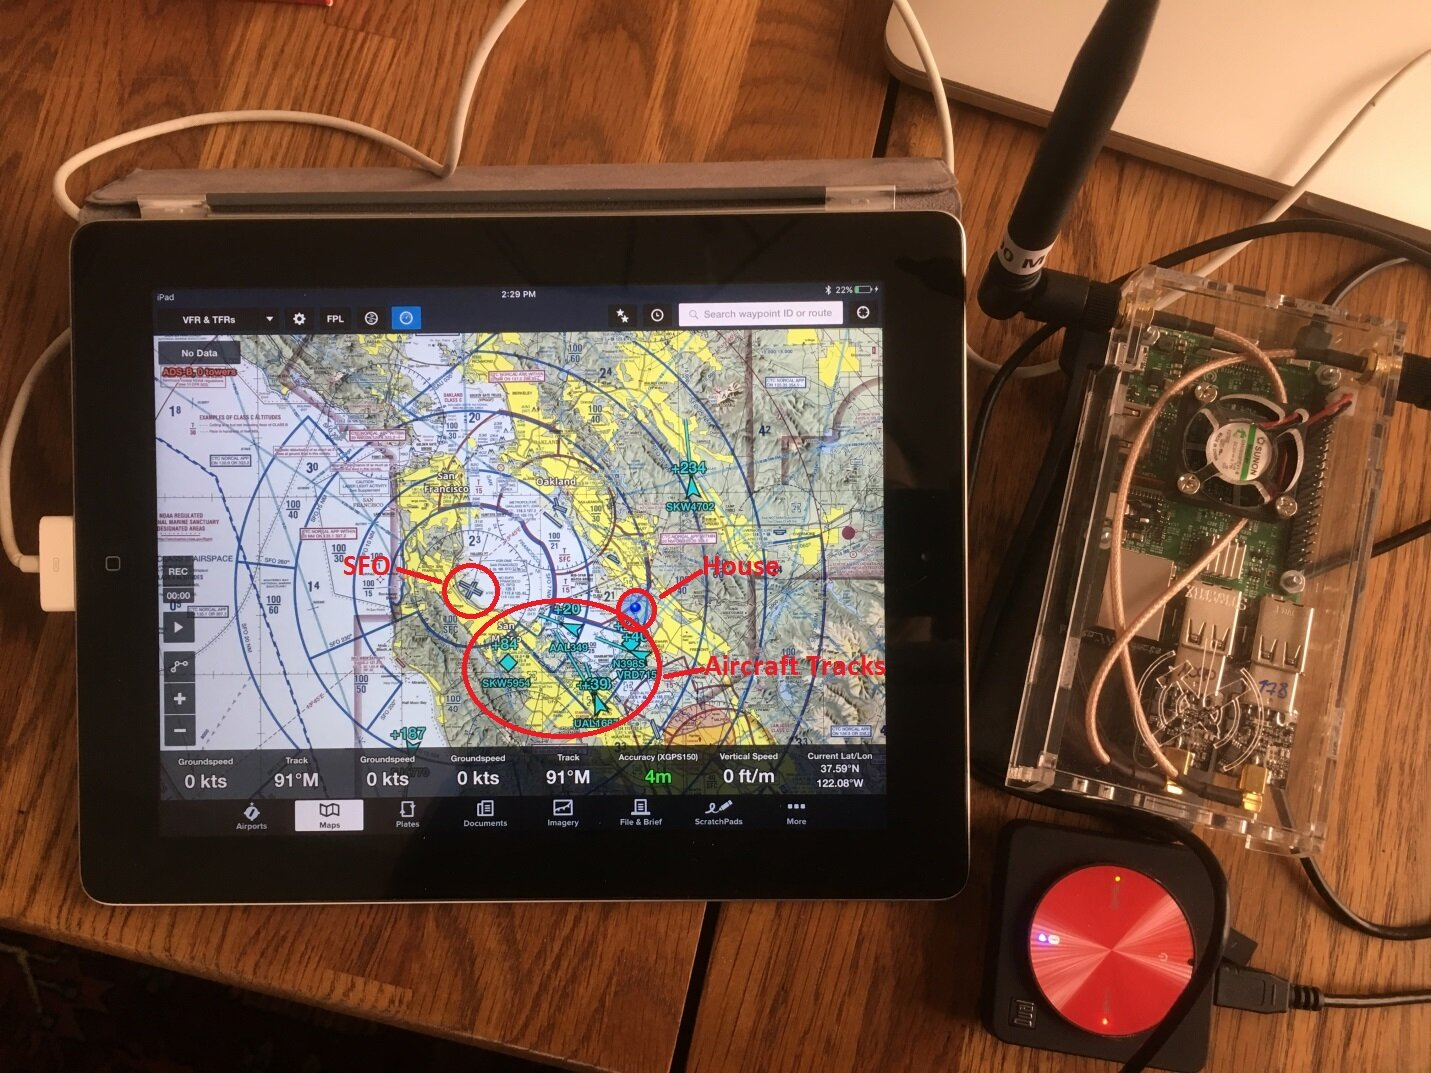 Test Flight of a Raspberry Pi-based Aircraft Tracker - IoT